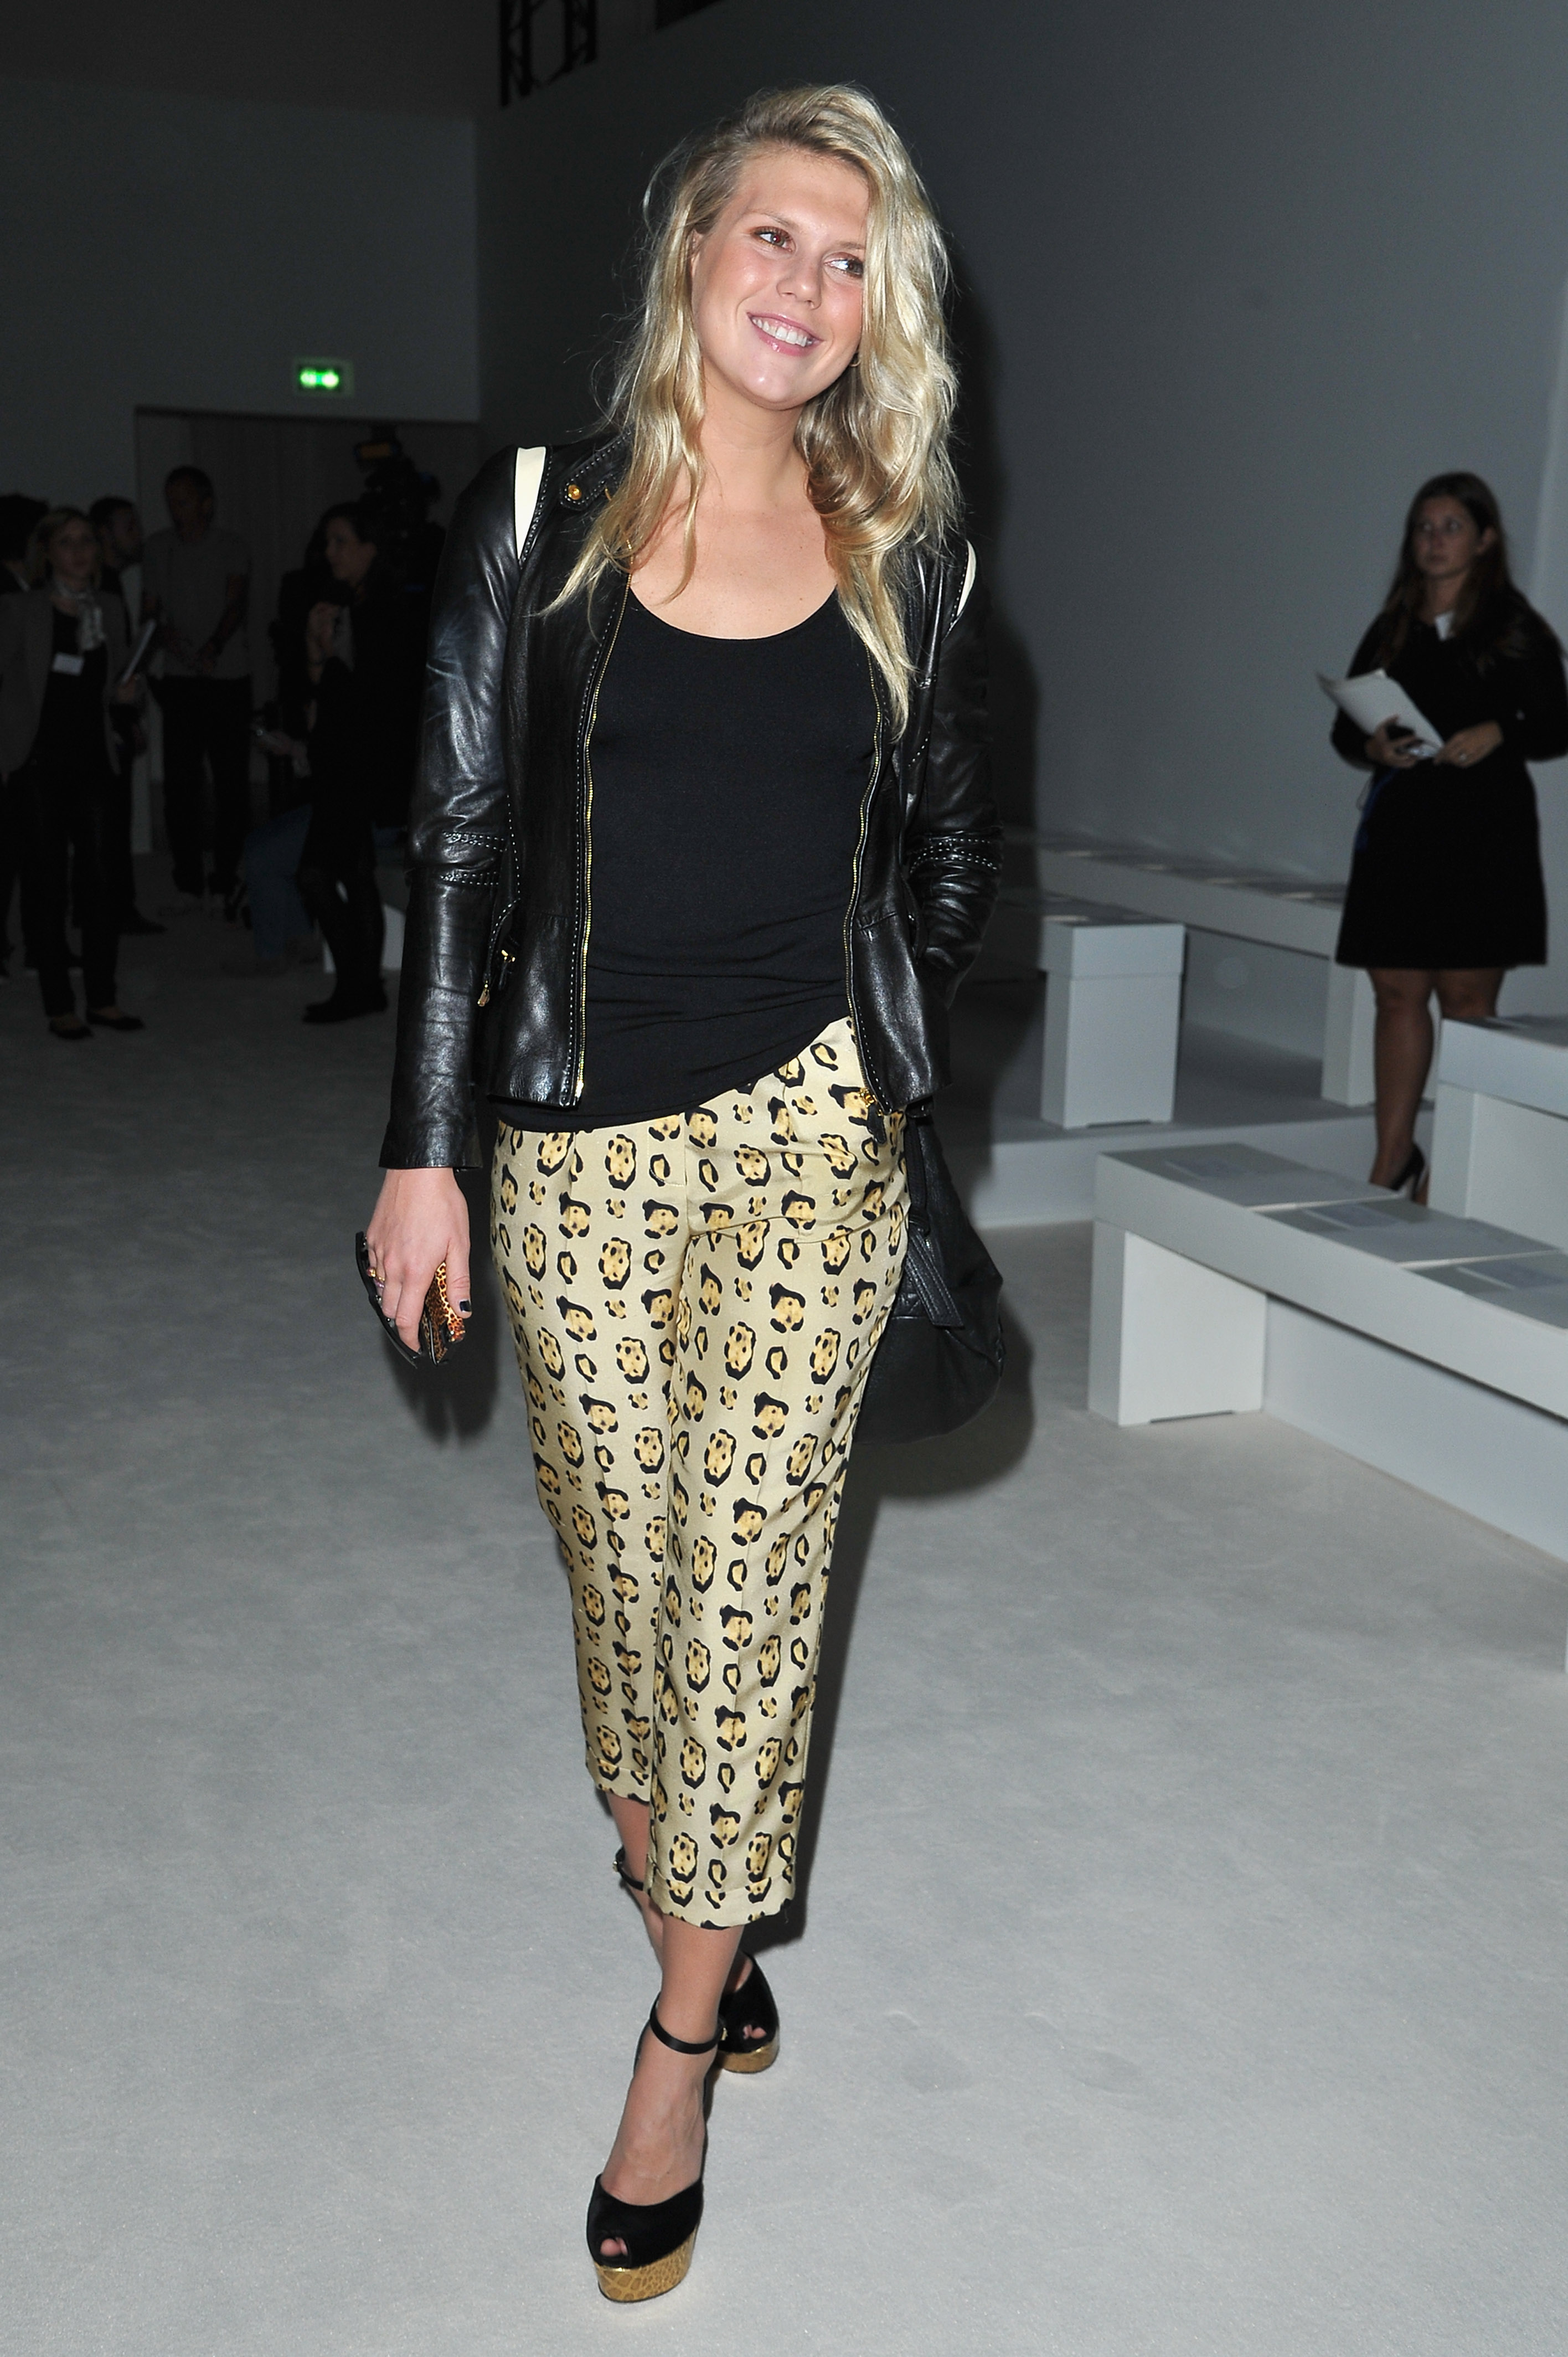 Alexandra Richards showed off her effortless style, and penchant for prints, in this tailored trouser look at Giambattista Valli. We're particularly loving her gold-platform sandals and leather jacket.